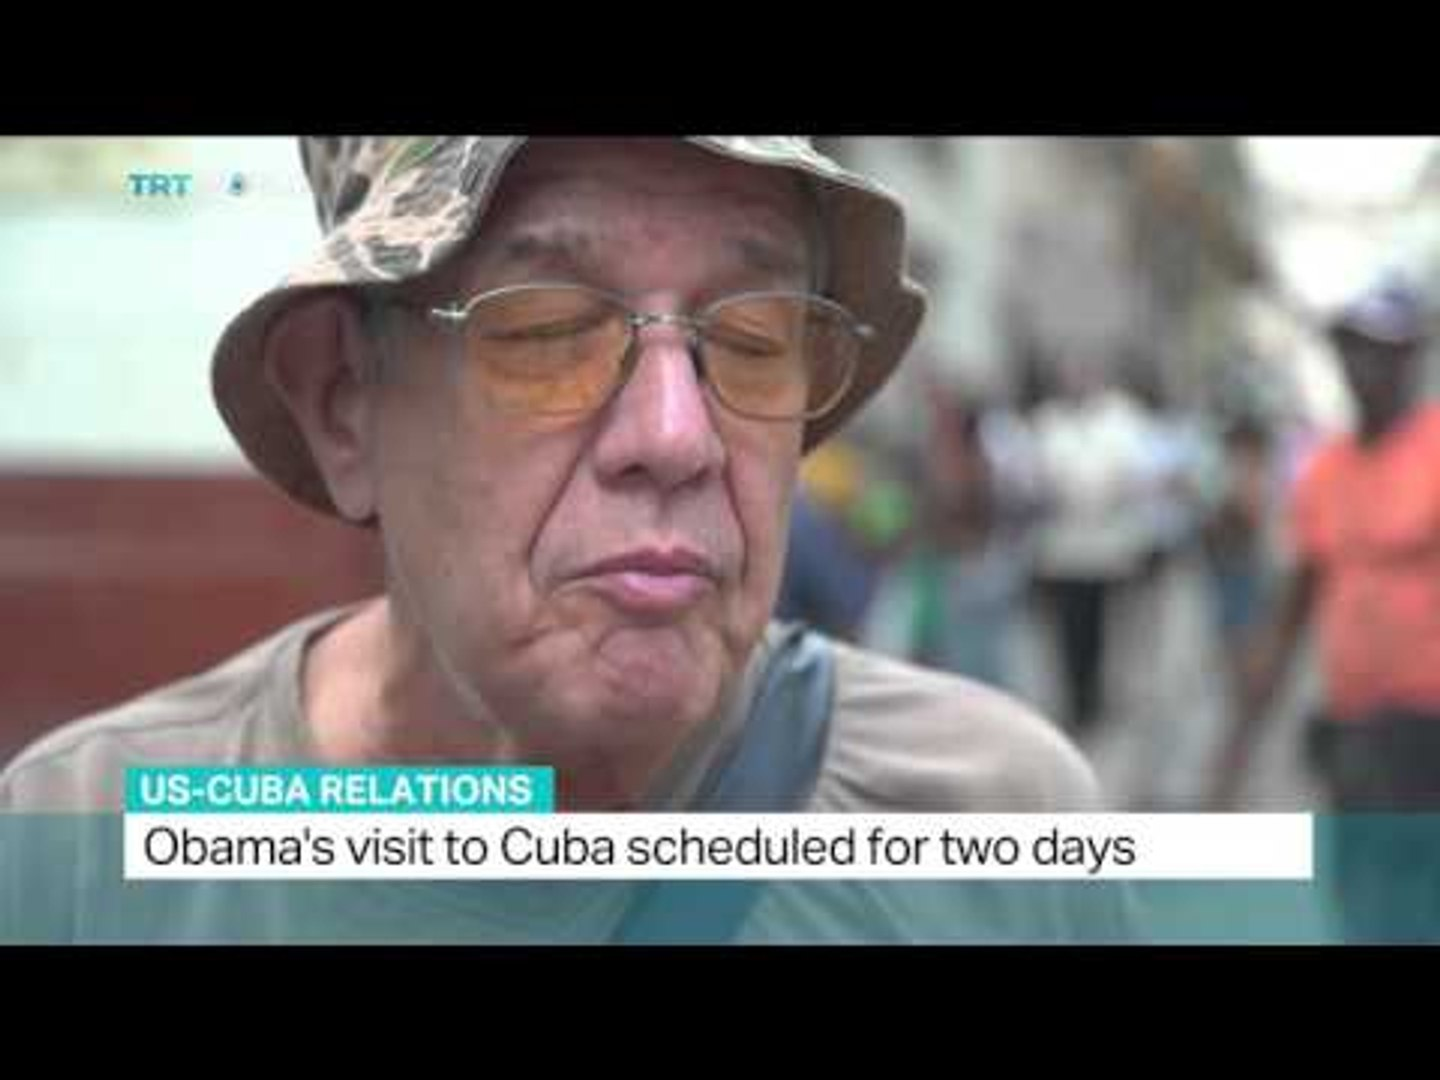 Anelise Borges reports from Havana on US-Cuba relations